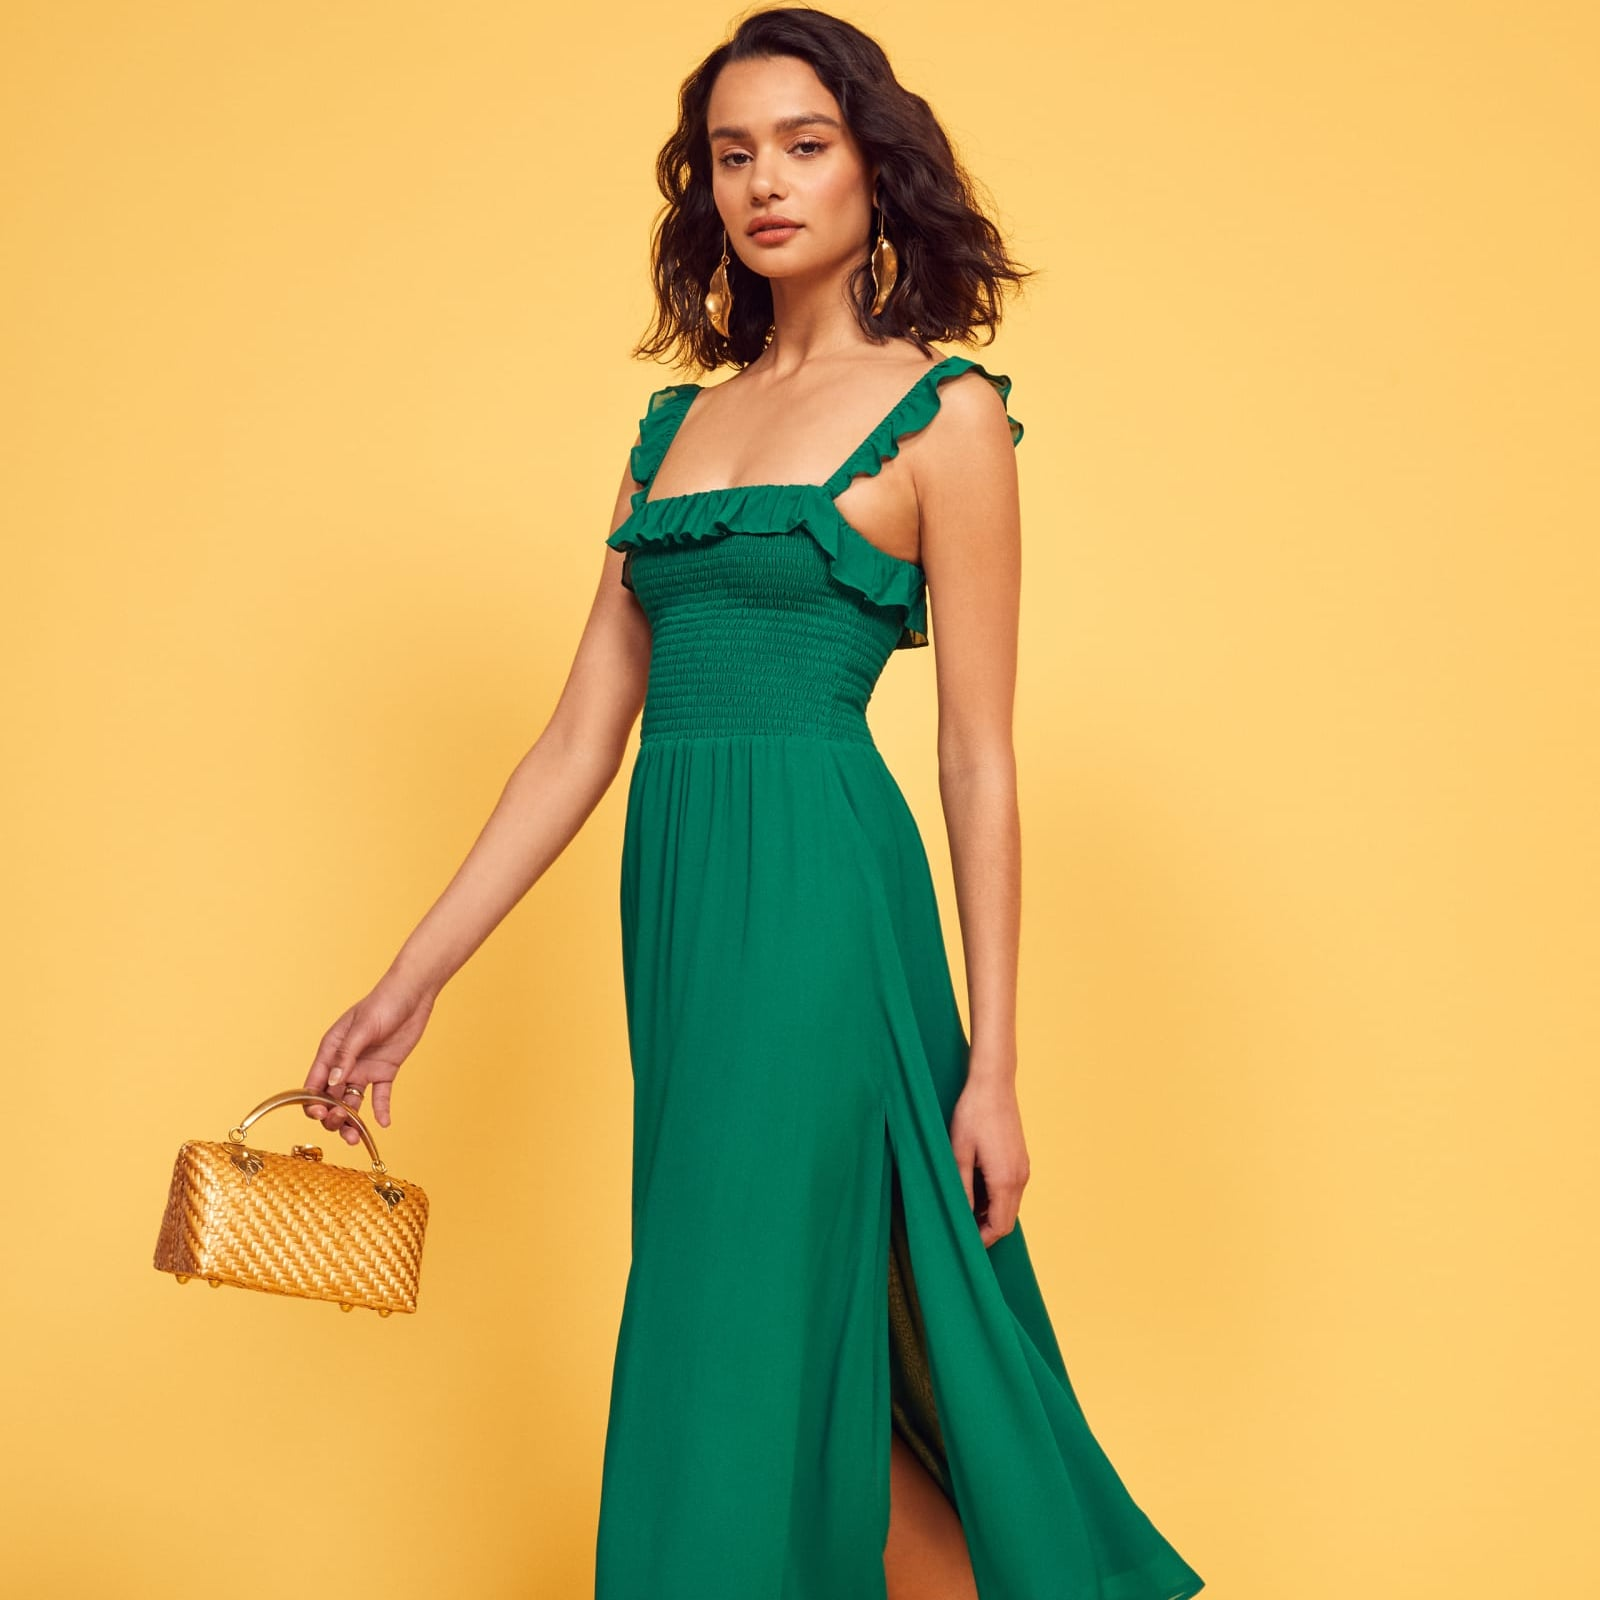 Summer Wedding Guest Dresses From Reformation Popsugar Fashion,Where To Buy Cheap Wedding Dresses Online